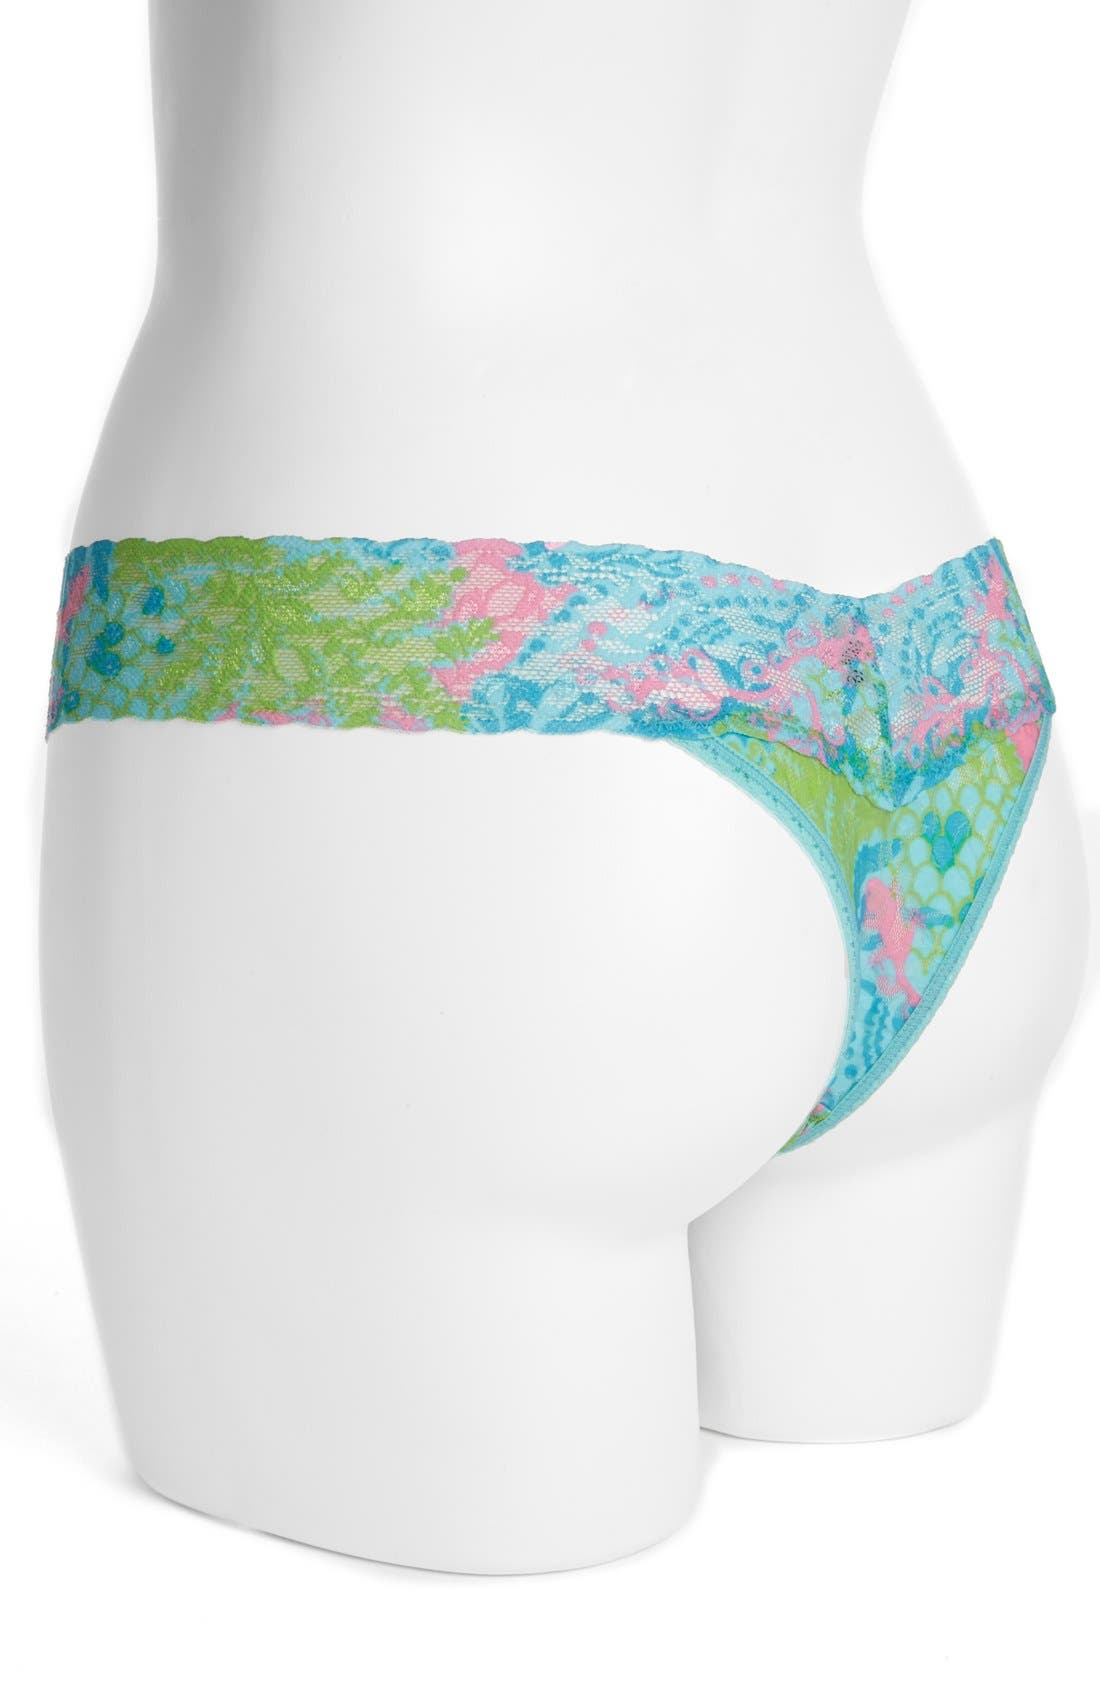 HANKY PANKY,                             x Lilly Pulitzer<sup>®</sup> 'Checking In' Low Rise Thong,                             Alternate thumbnail 3, color,                             305